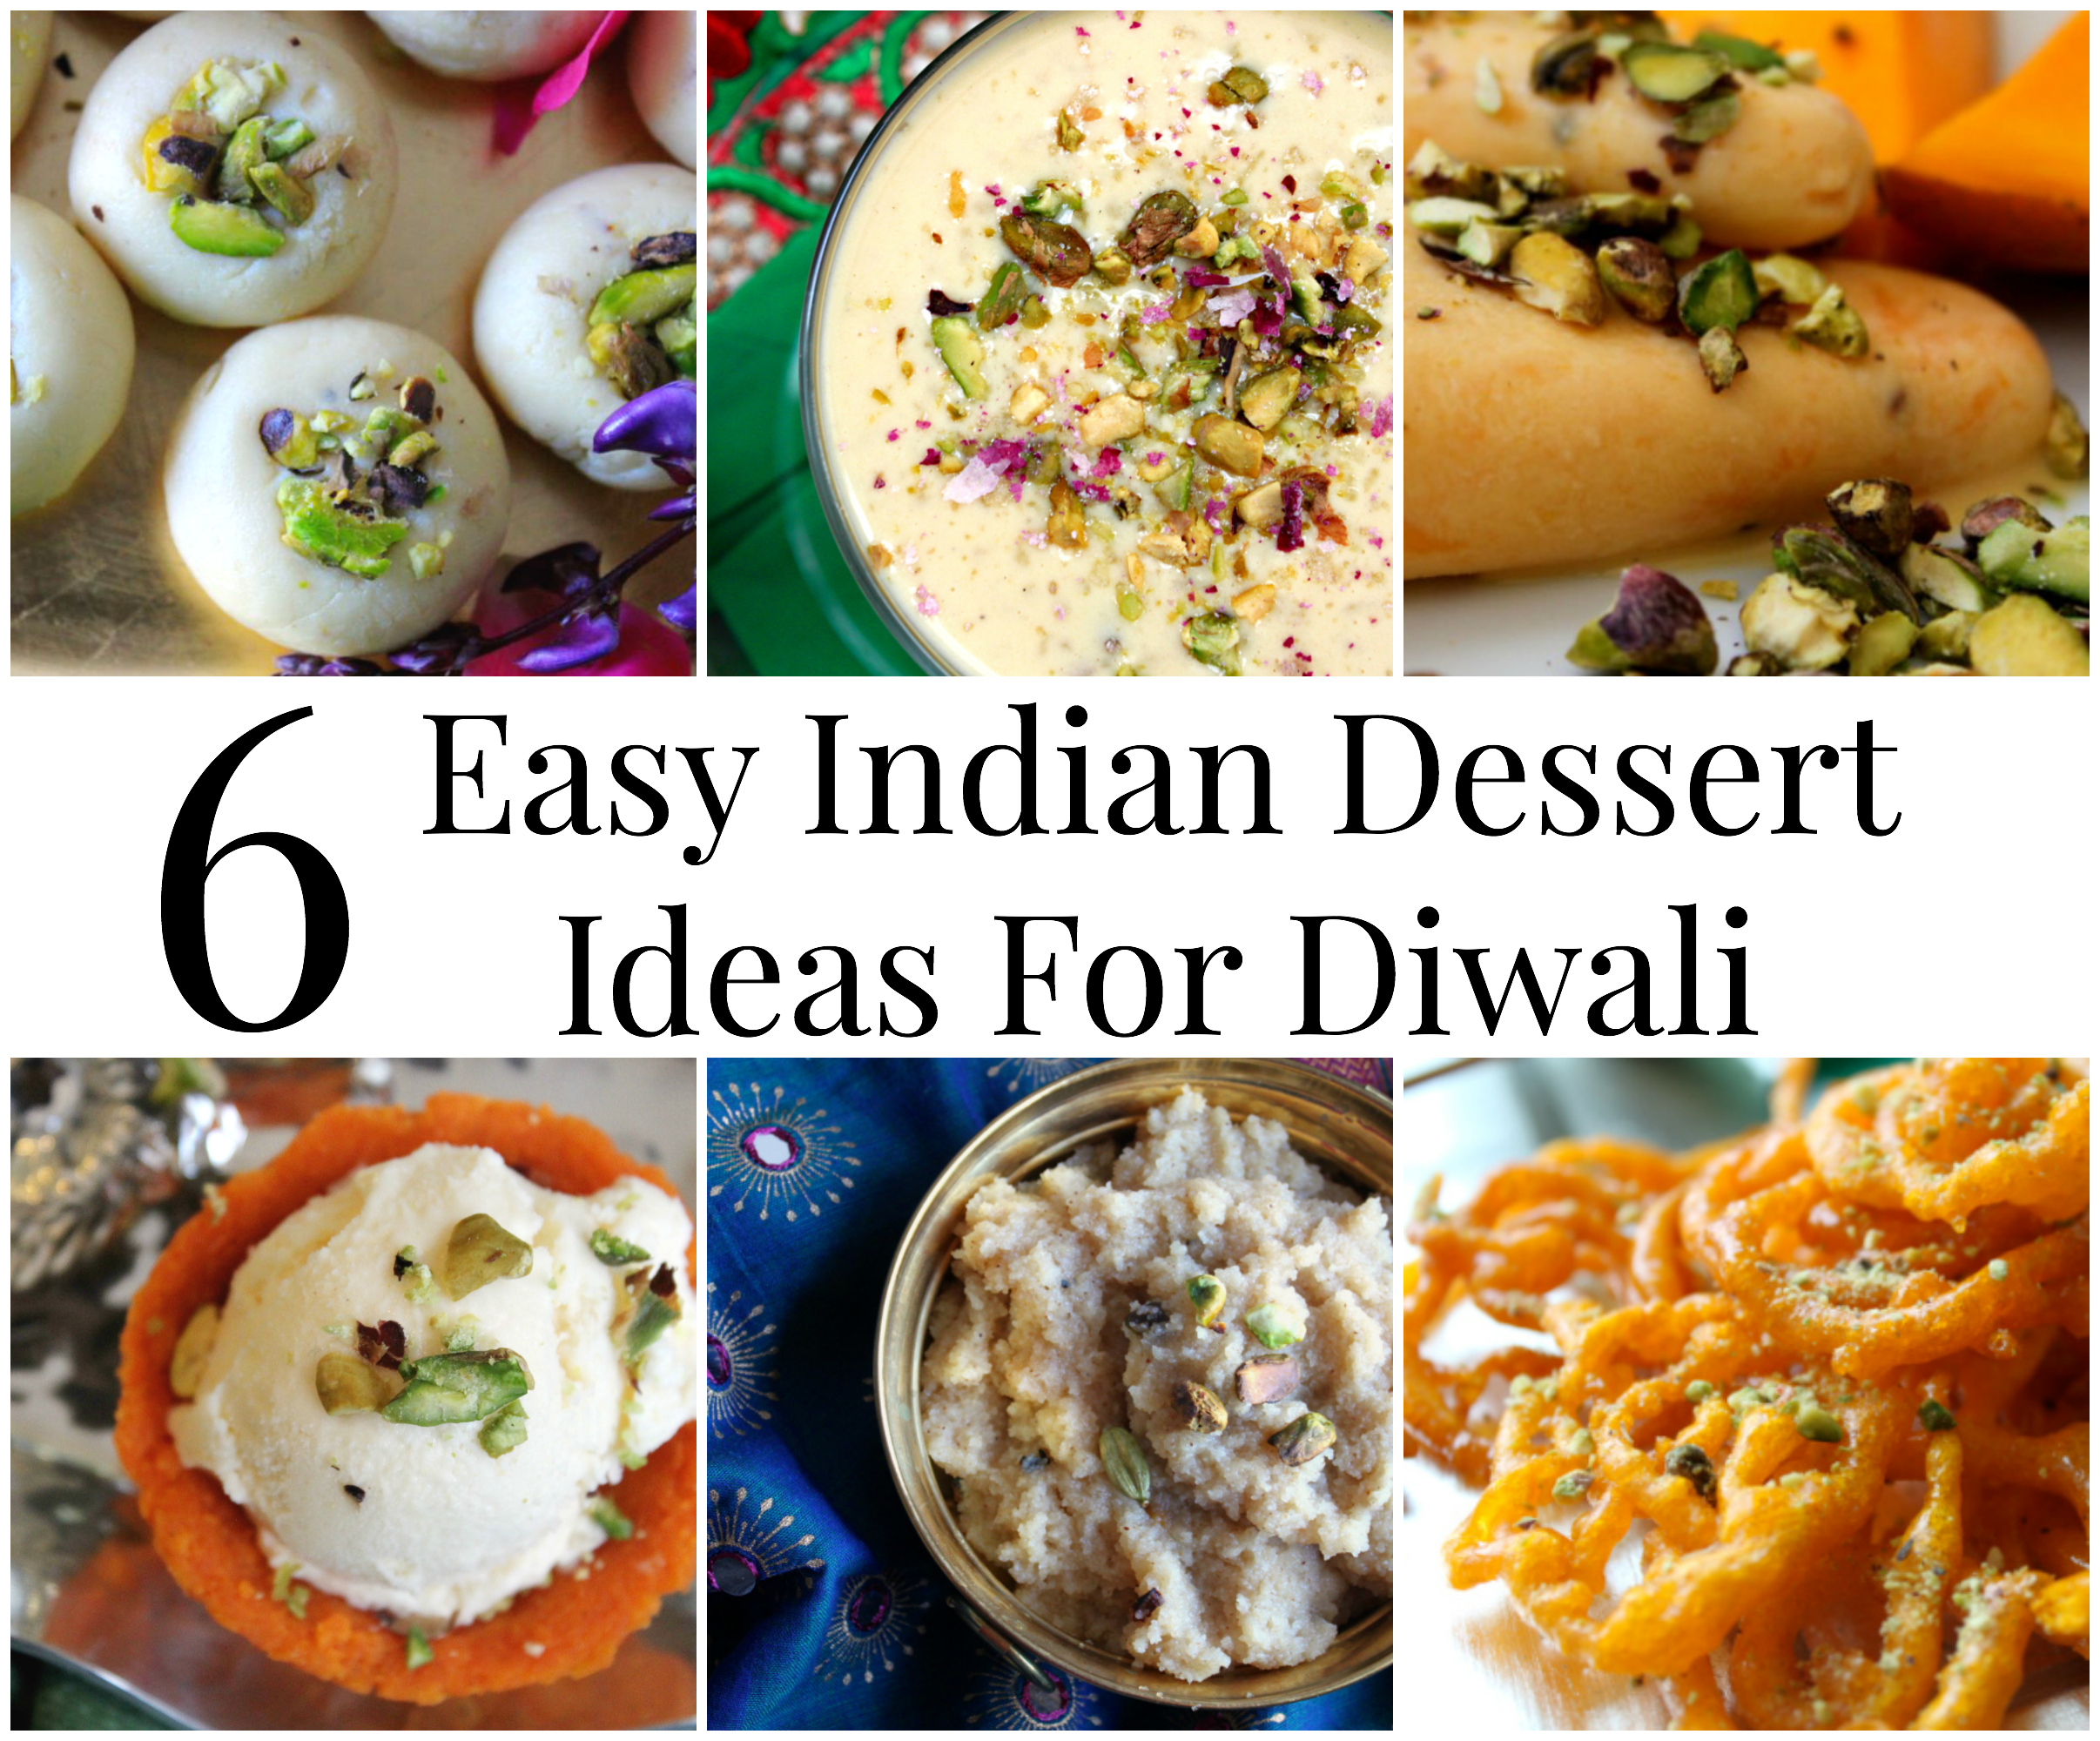 6 easy indian diwali desserts and my diwali menu forumfinder Images